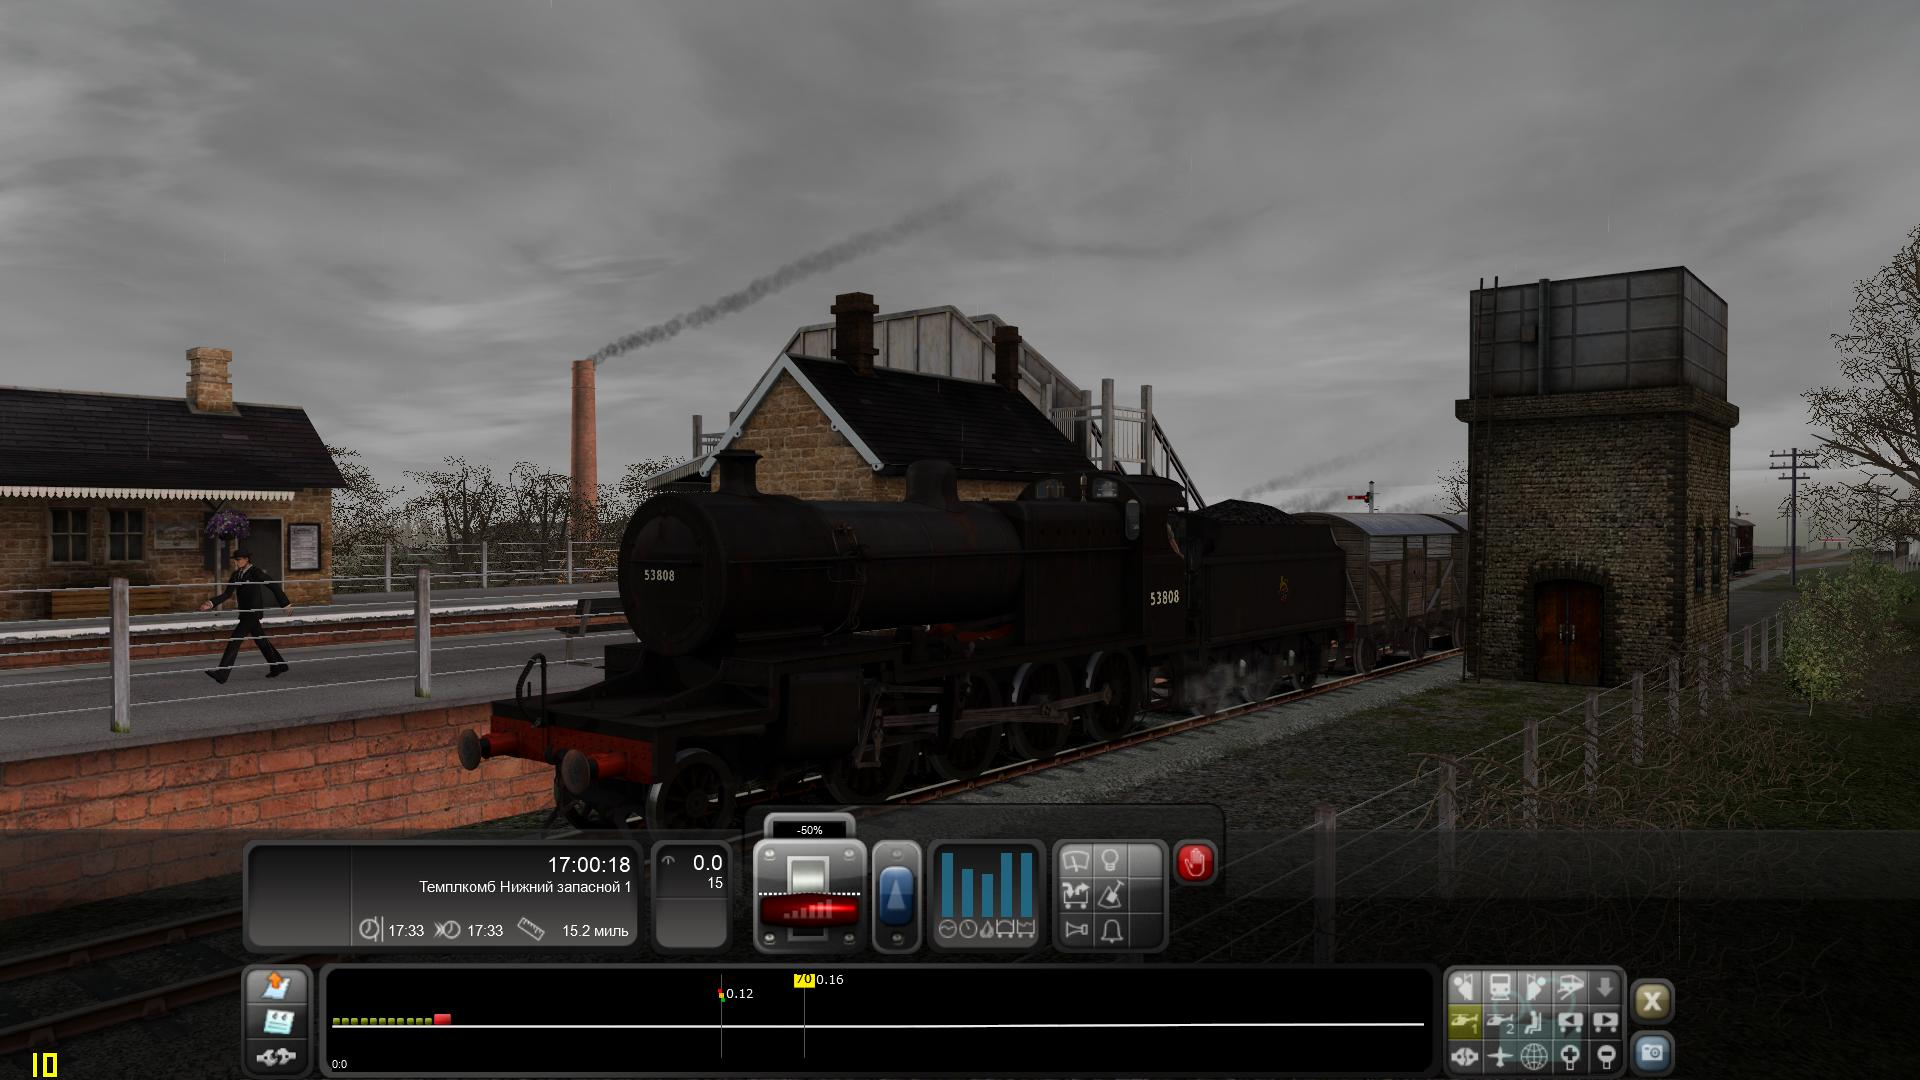 http://screenshot.ru/upload/images/2018/03/09/RailWorksProc22018-03-0919-43-03-5451d03.jpg